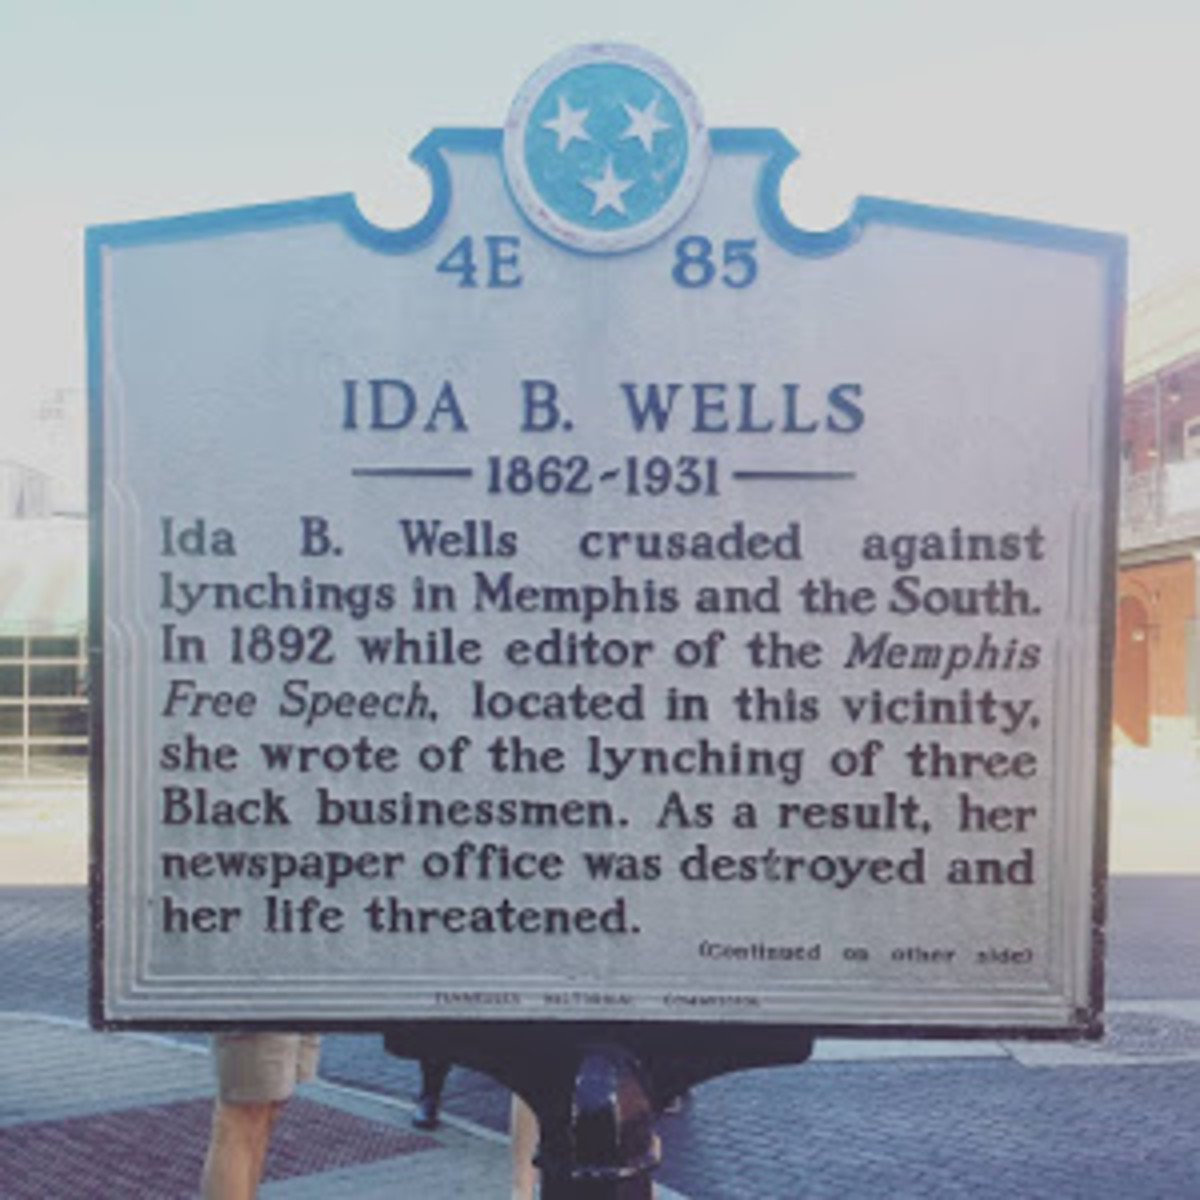 The Truth Will Unite Us: Ida B. Wells, Teacher and Writer